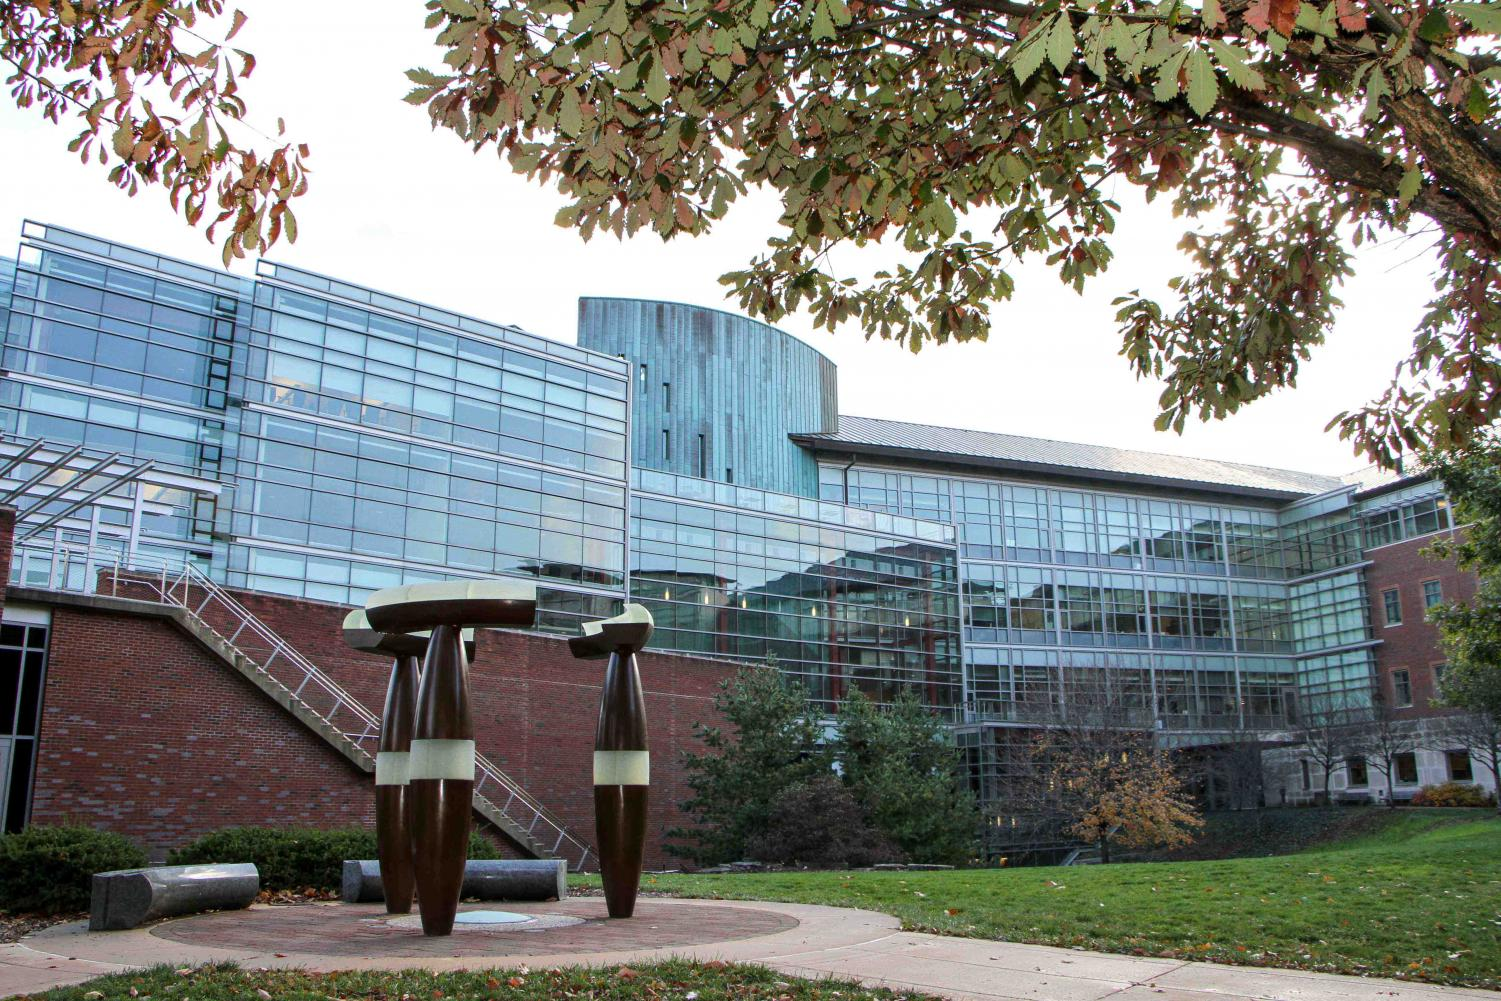 The Thomas Siebel Center for Computer Science is a teaching and research facility that houses the Department of Computer Science at the University. Located in Urbana, it features new-age technology and computer laboratories that allow it to be the first